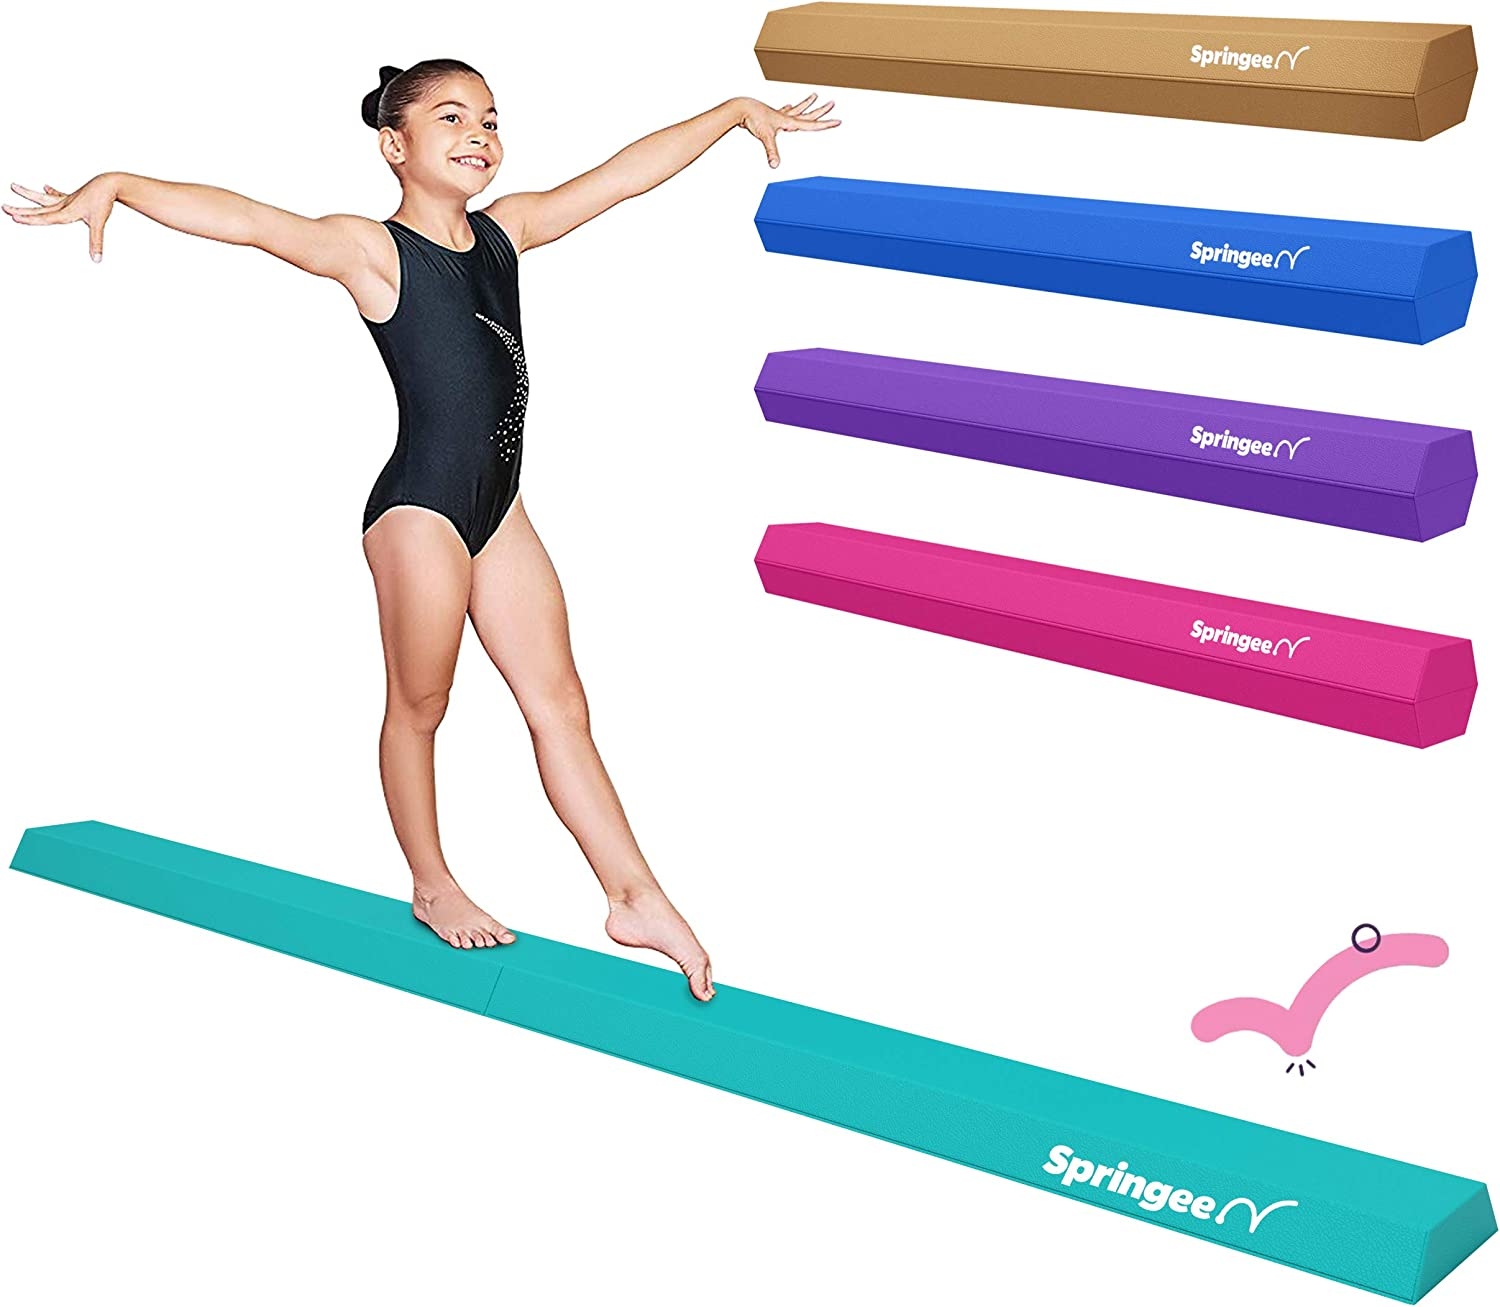 Springee 9ft Balance Free shipping Excellent Beam - Folding Firm Extra Gymnastic Vinyl